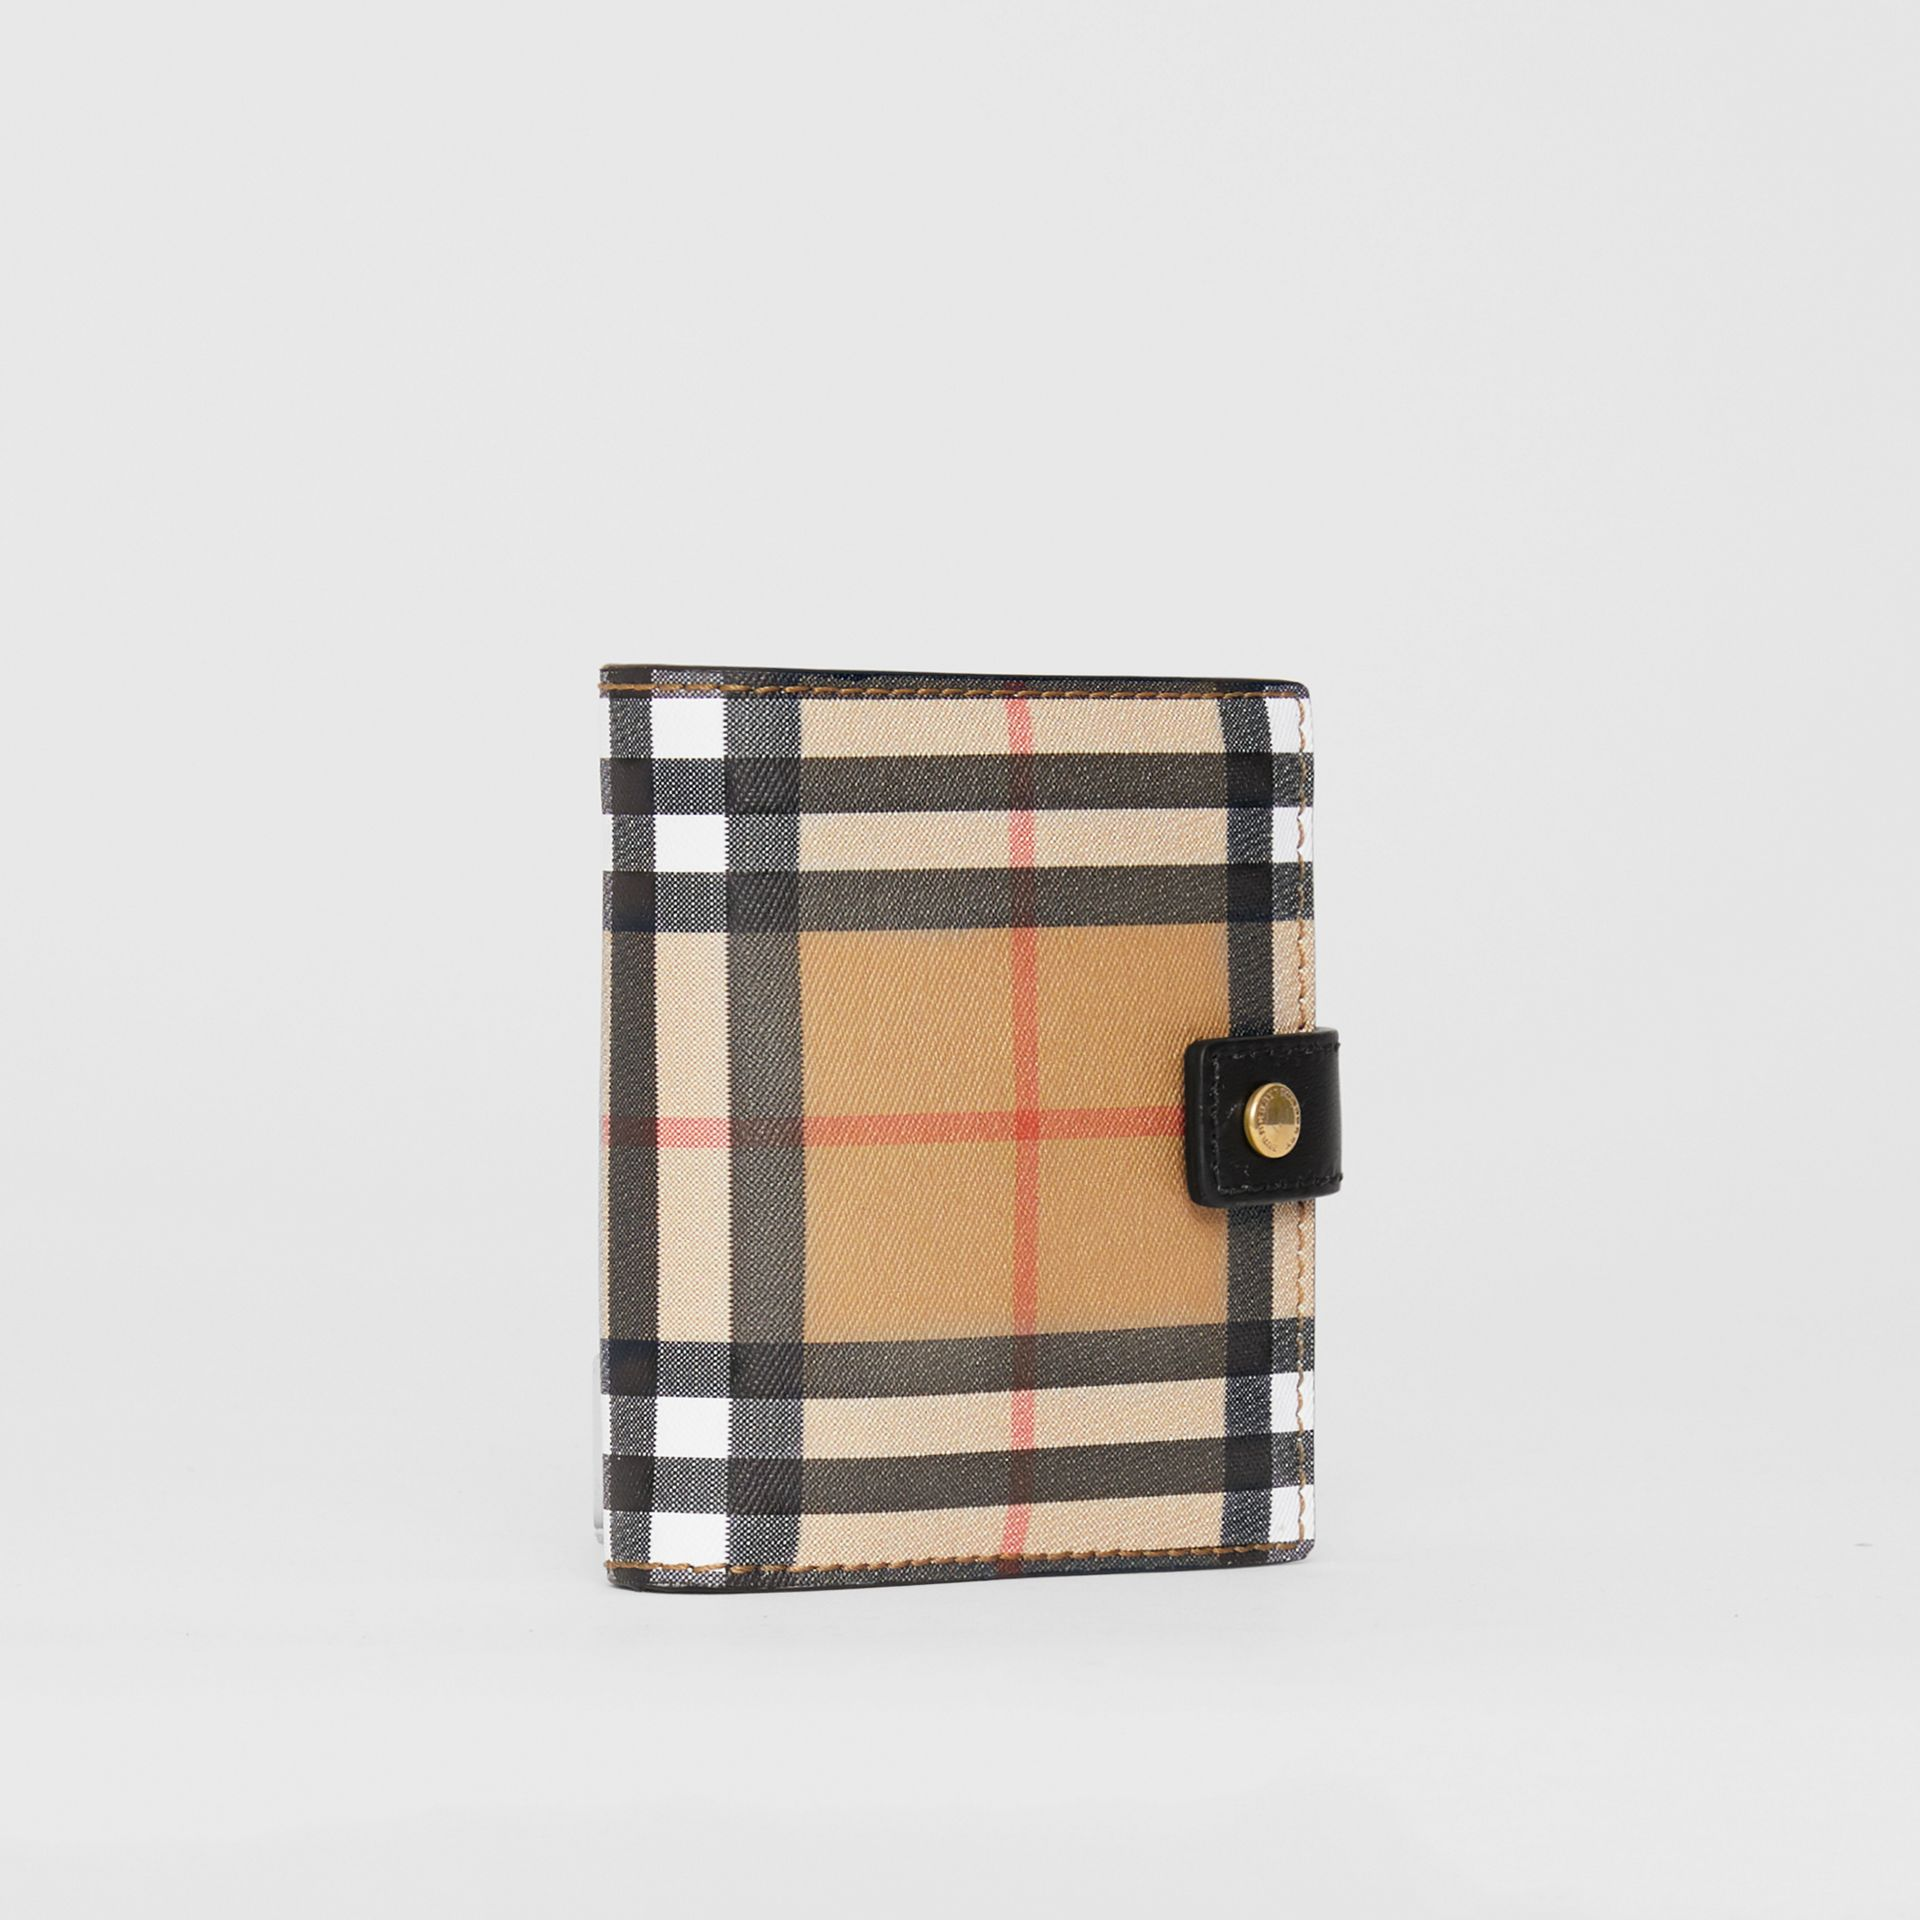 Small Vintage Check and Leather Folding Wallet in Black - Women | Burberry United Kingdom - gallery image 4